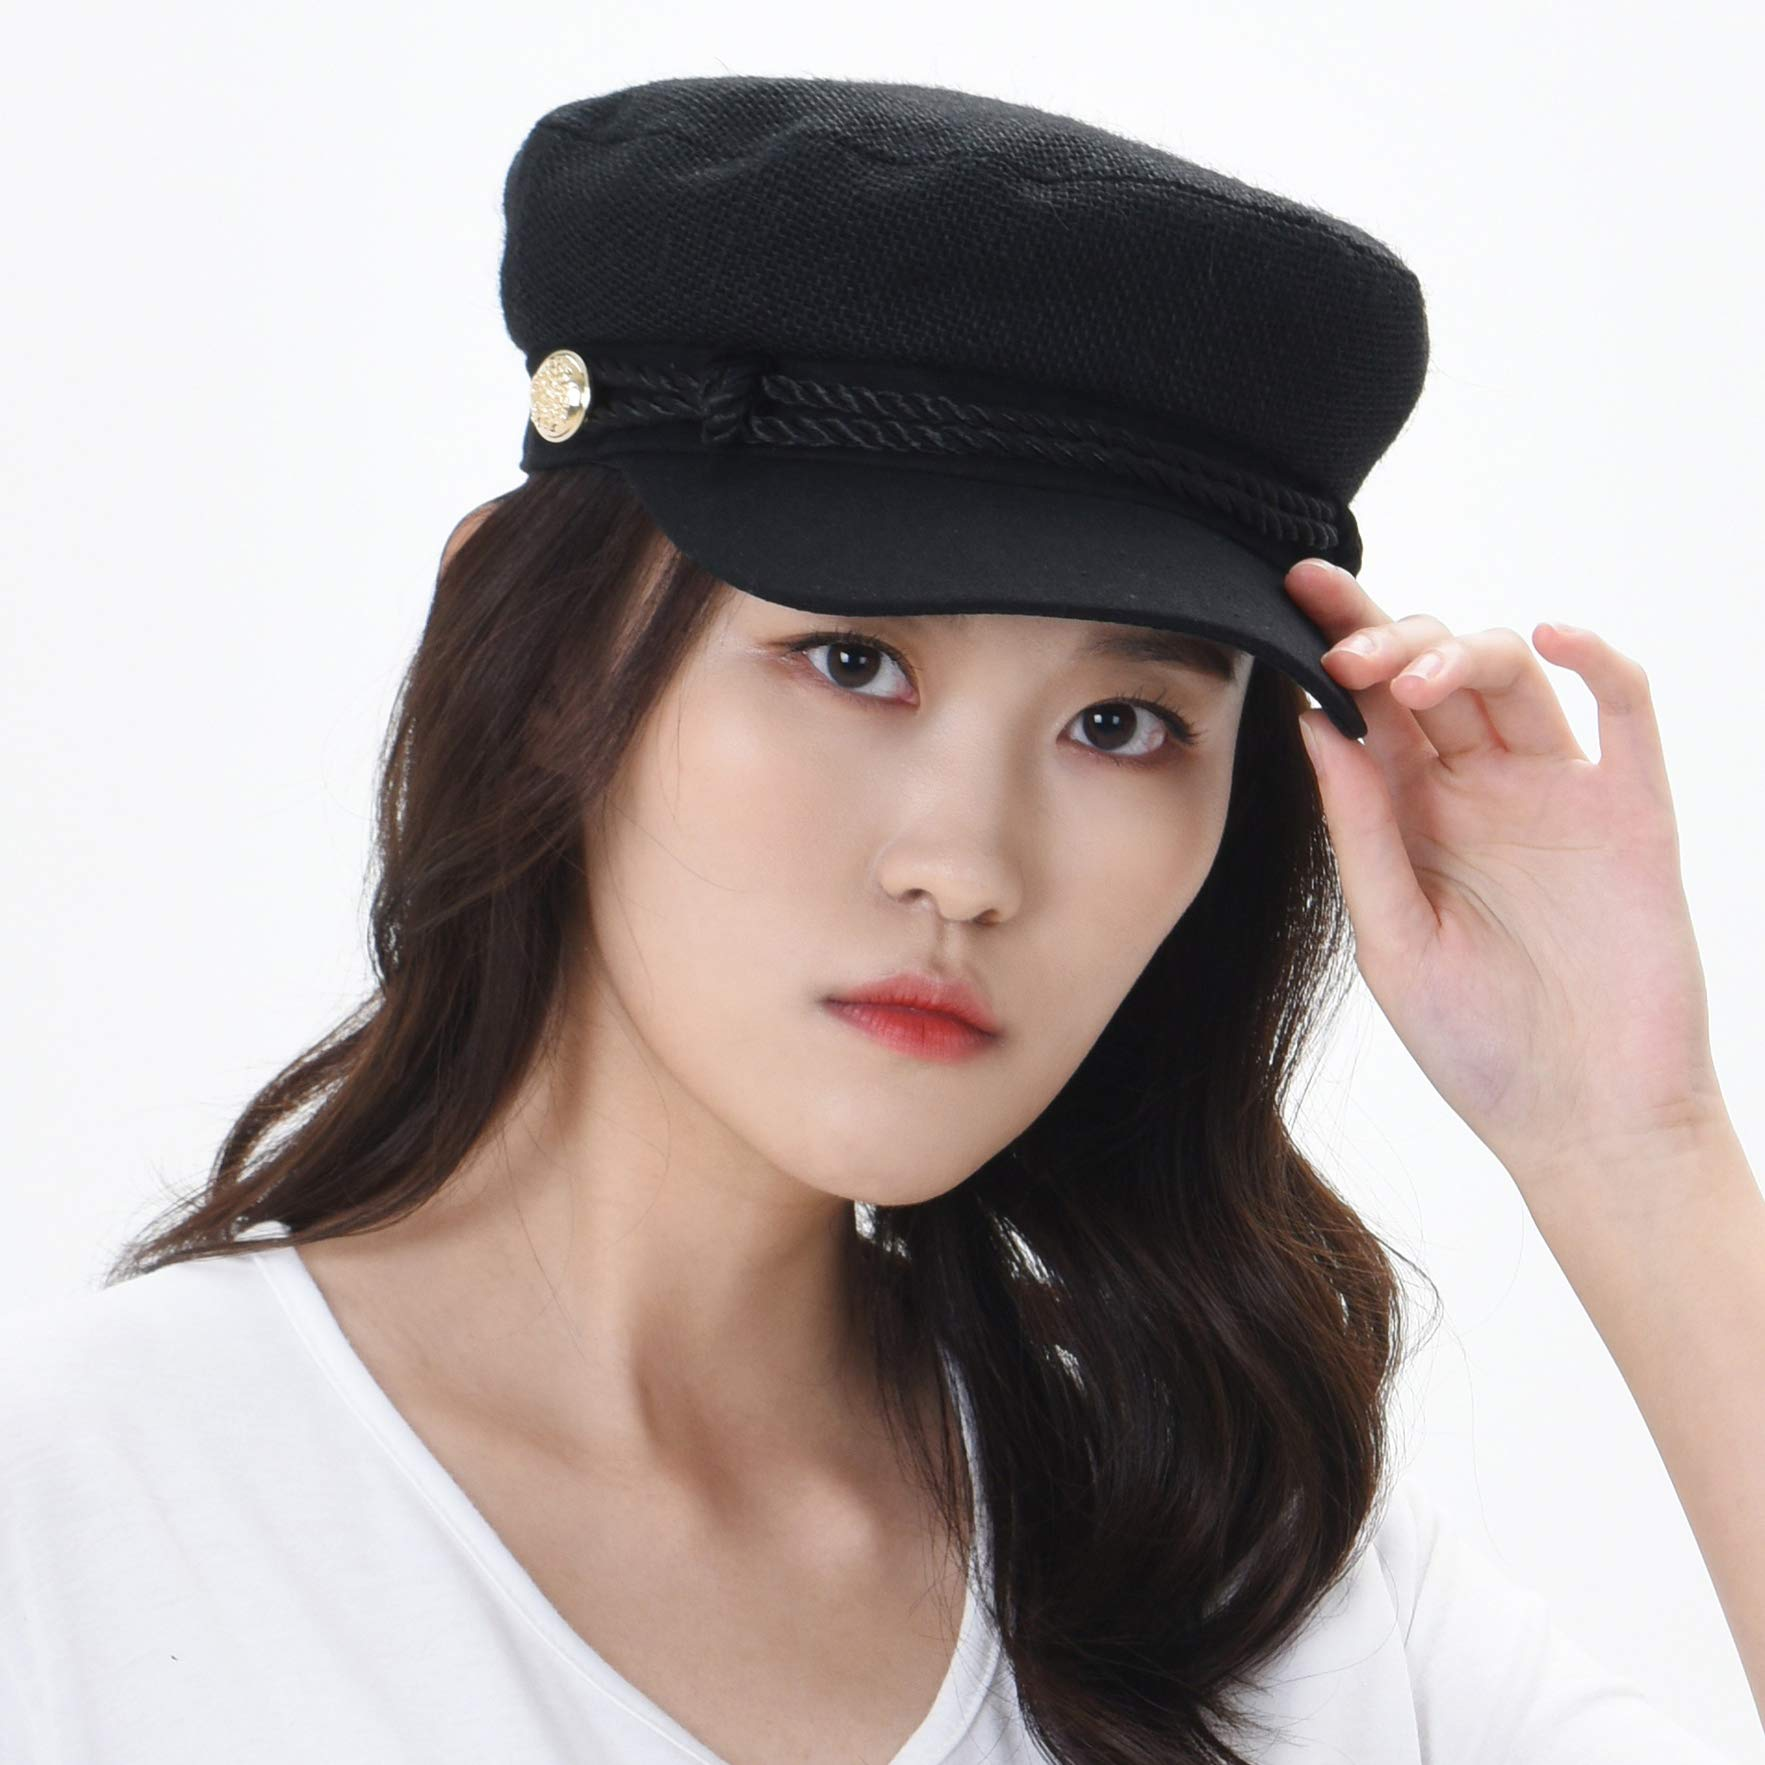 WITHMOONS Women Linen Newsboy Cap Mesh Breathable Summer Hat MUG1164 (Black) by WITHMOONS (Image #3)